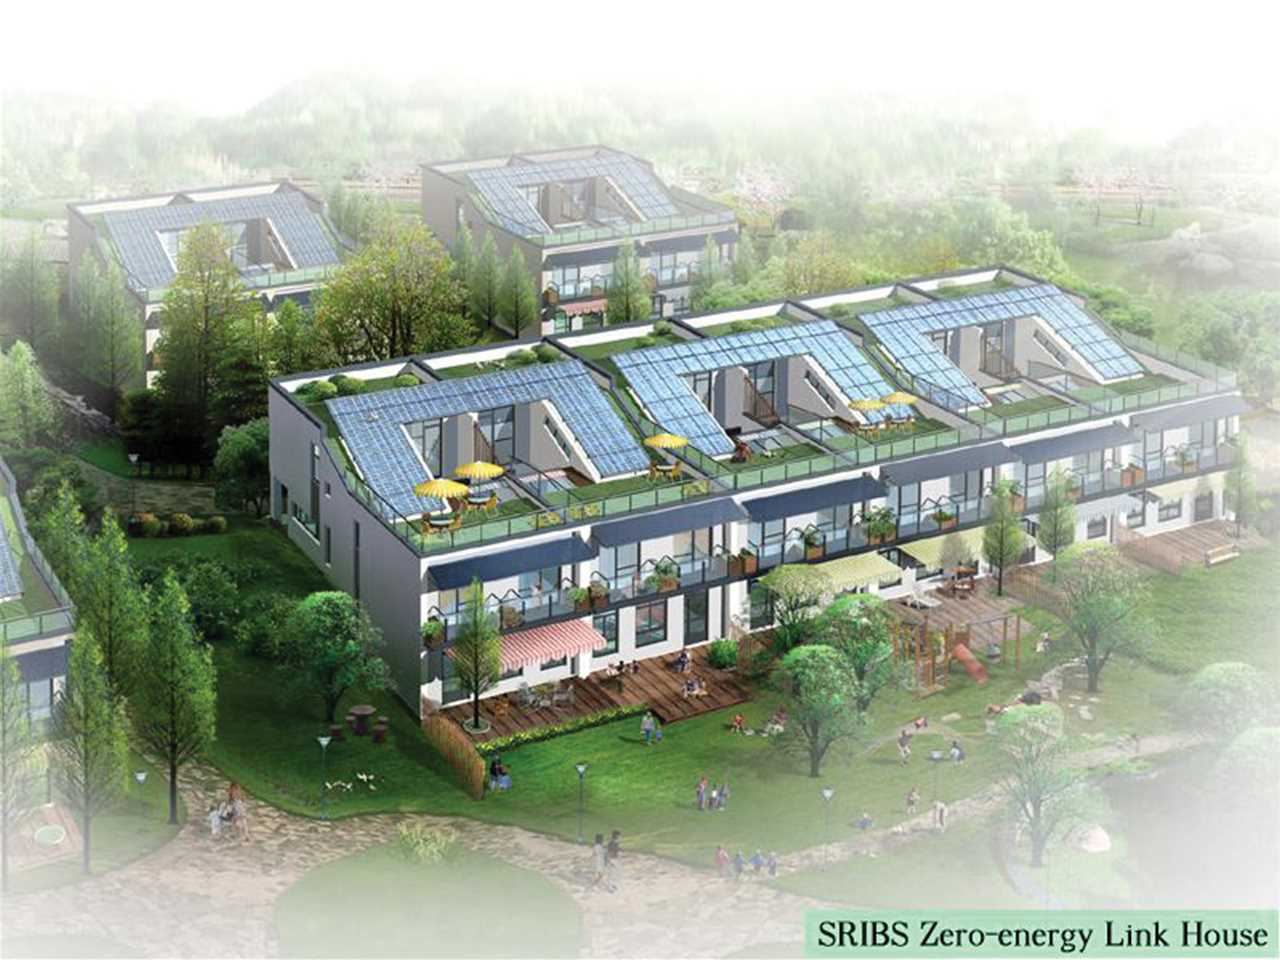 Holcim Awards Acknowledgement 2005 Asia Pacific: SRIBS Minimal Energy Link House, Shanghai, China